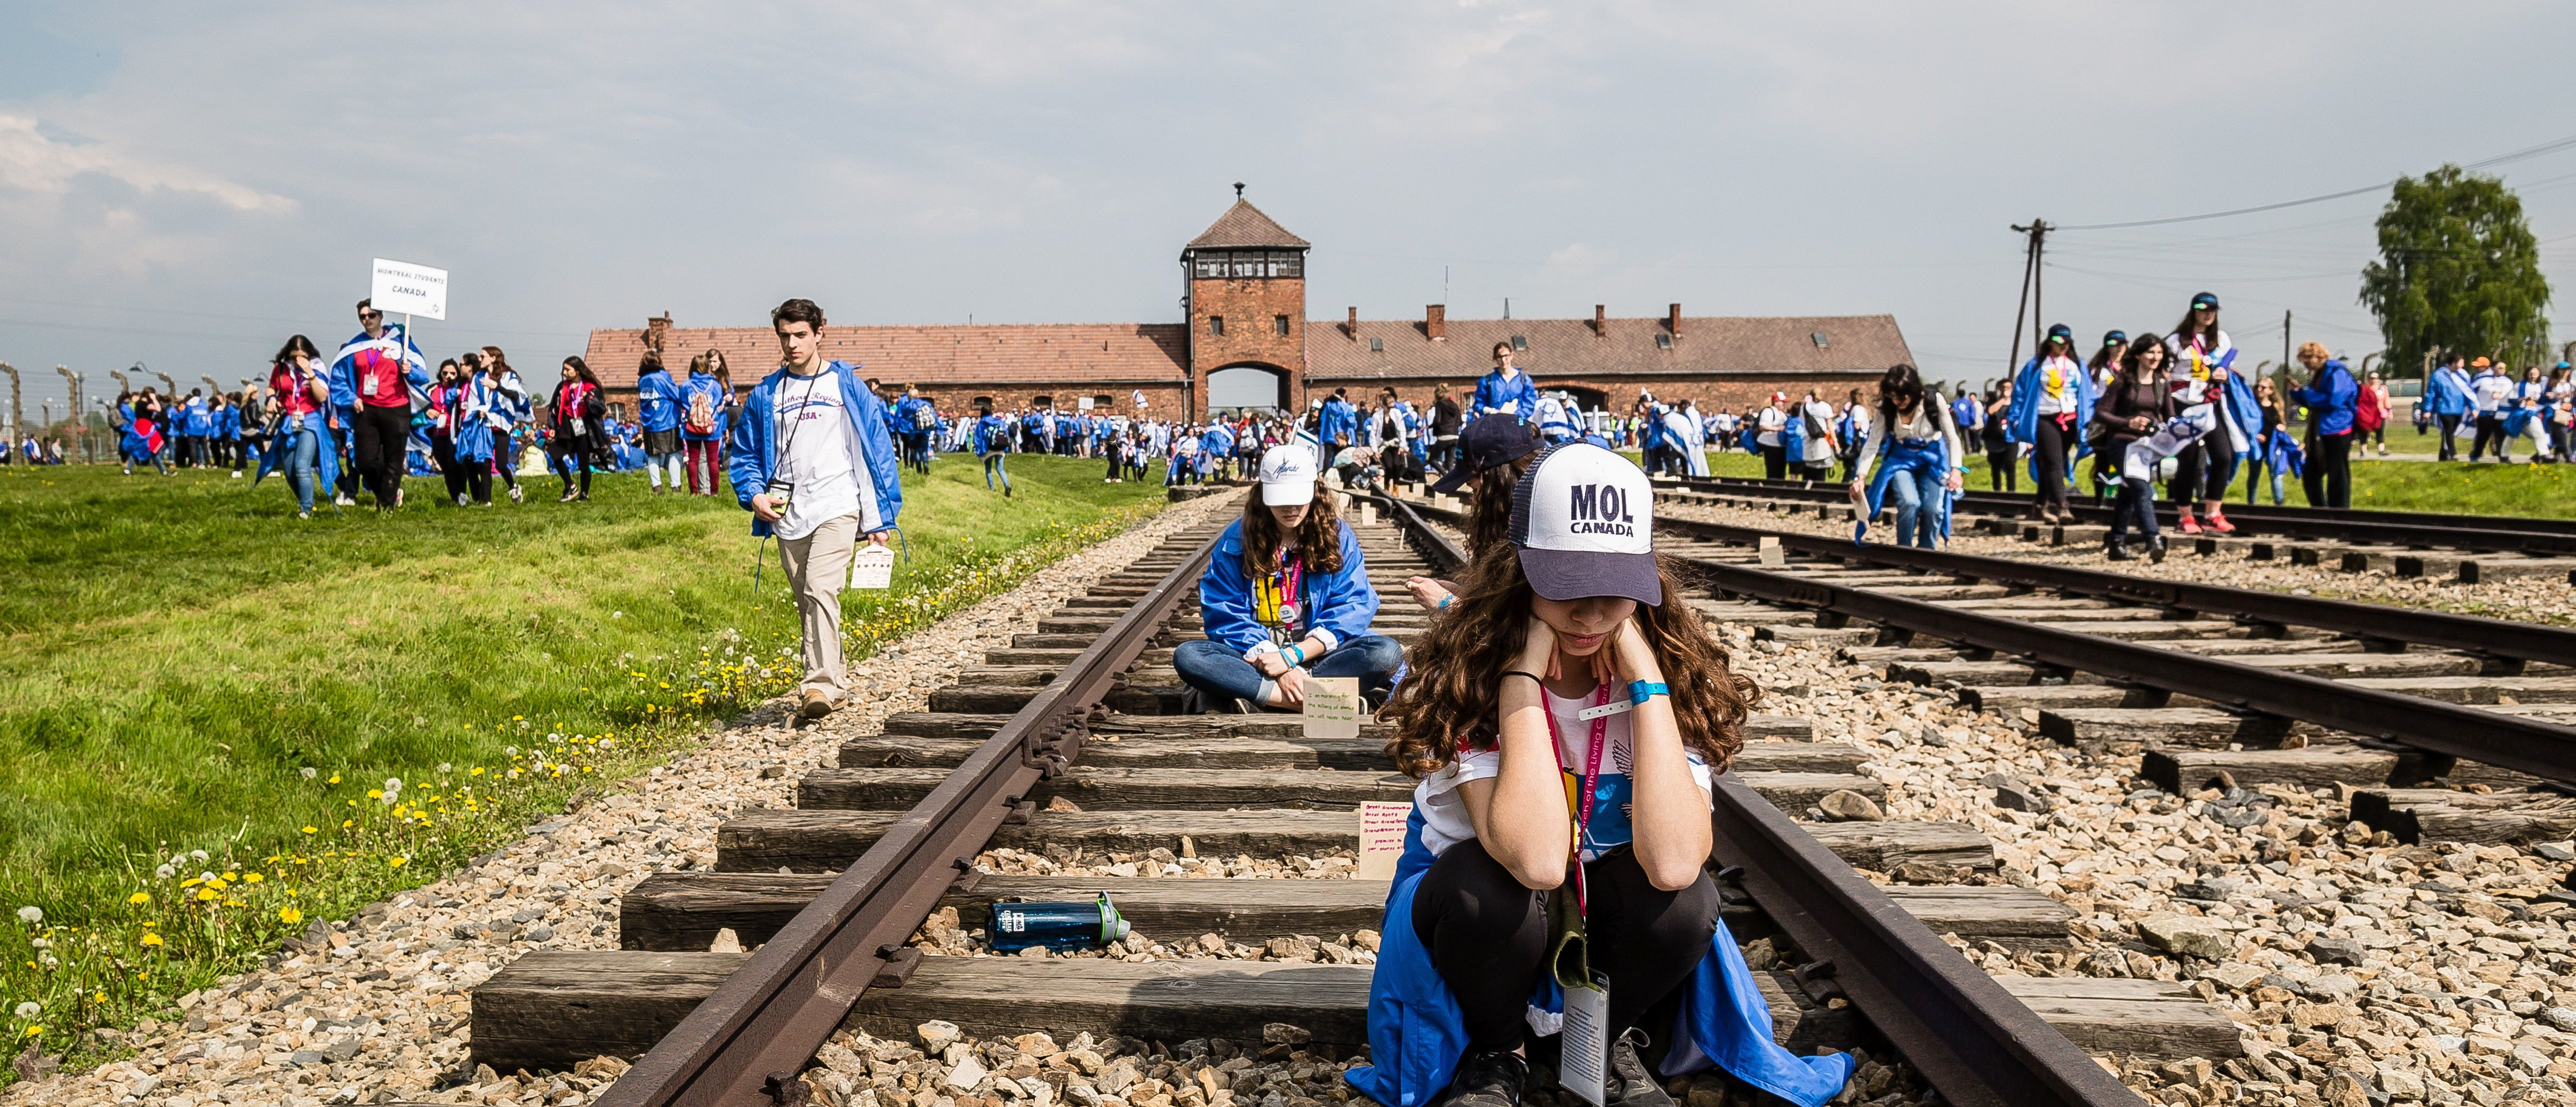 "Participants of the annual ""March of the Living"" are seen on railtracks leading to the former Auschwitz-Birkenau Nazi death camp in Brzezinka (Birkenau) near Oswiecim (Auschwitz), Poland, on May 5, 2016. Thousands of young Jews from 40 nations marched alongside a handful of Holocaust survivors and Polish teenagers in homage to the victims of the former Auschwitz-Birkenau WWII death camp in southern Poland. (Photo: WOJTEK RADWANSKI/AFP/Getty Images)"